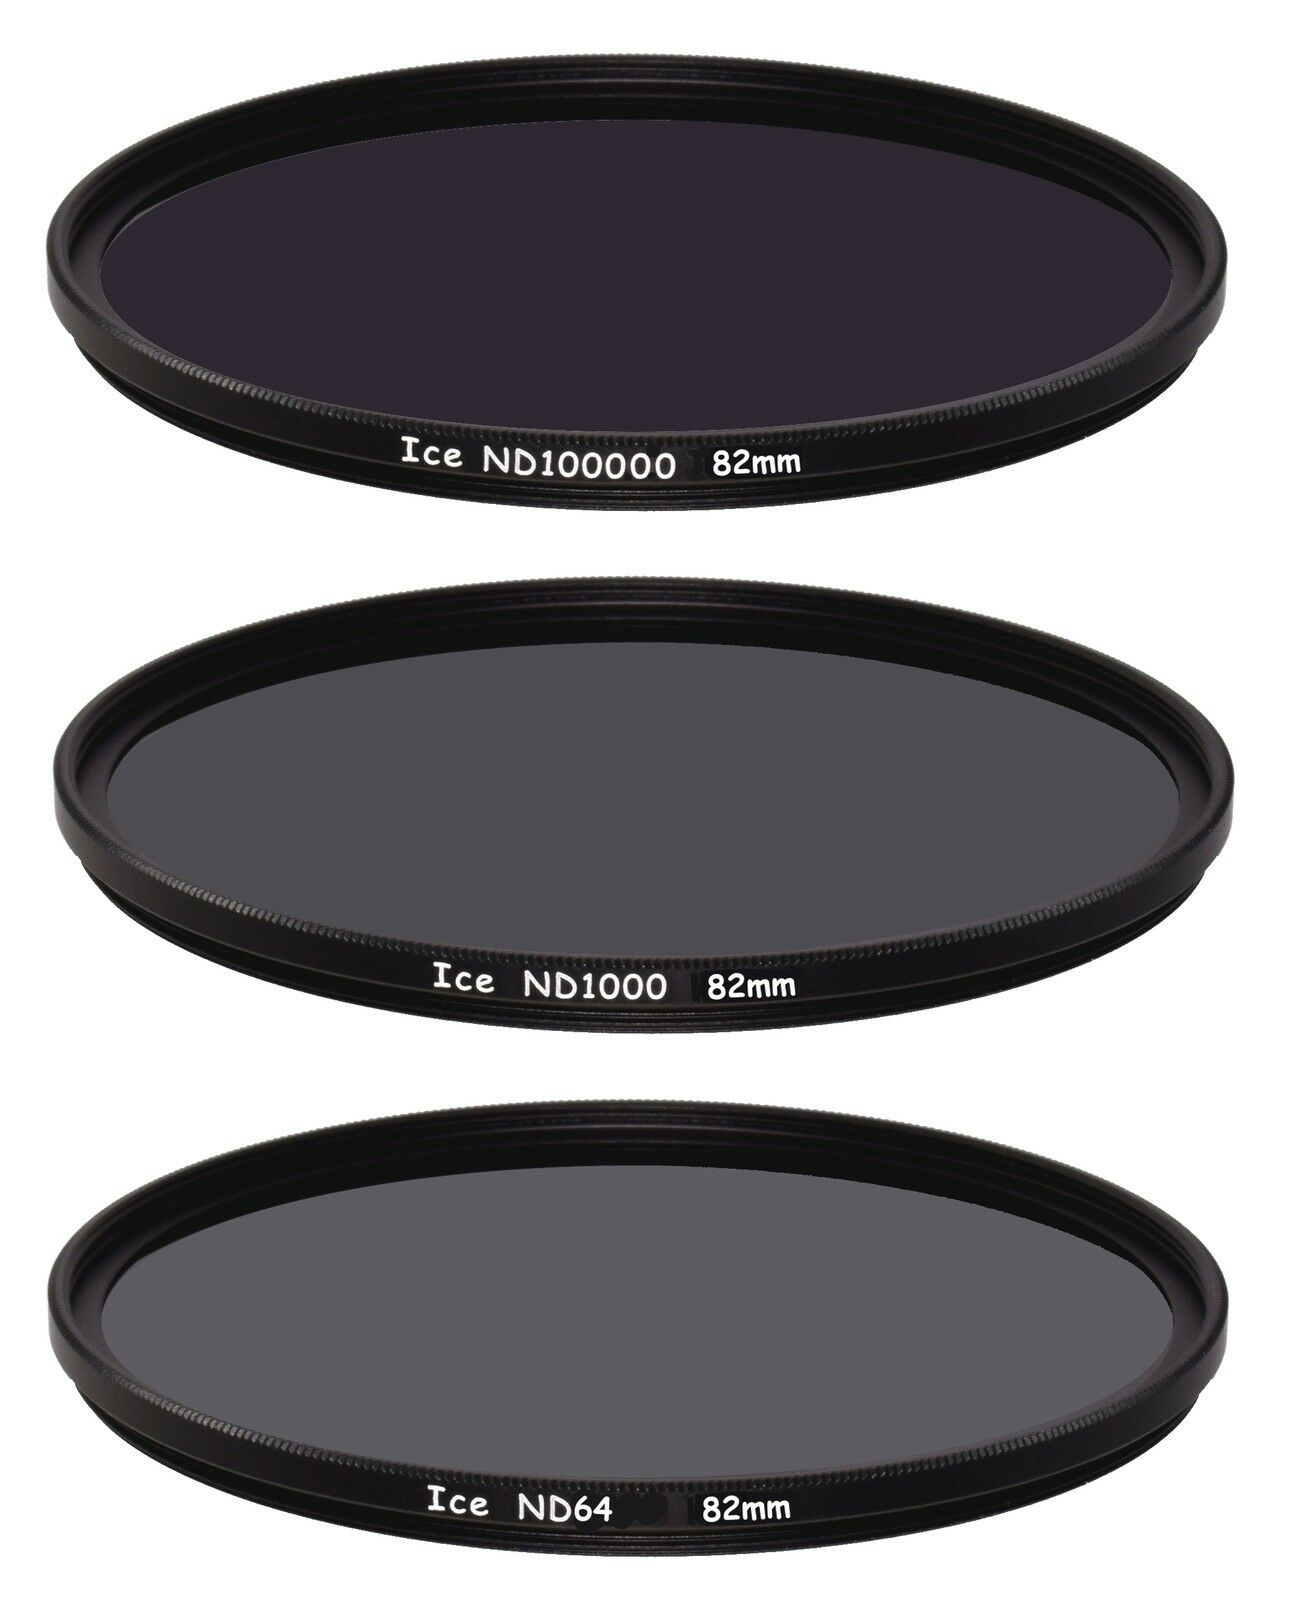 ICE Astral 3 Slim Filter Set 77mm LiPo UV-IR Cut ND100000 16.5 Stop ND Optical Glass